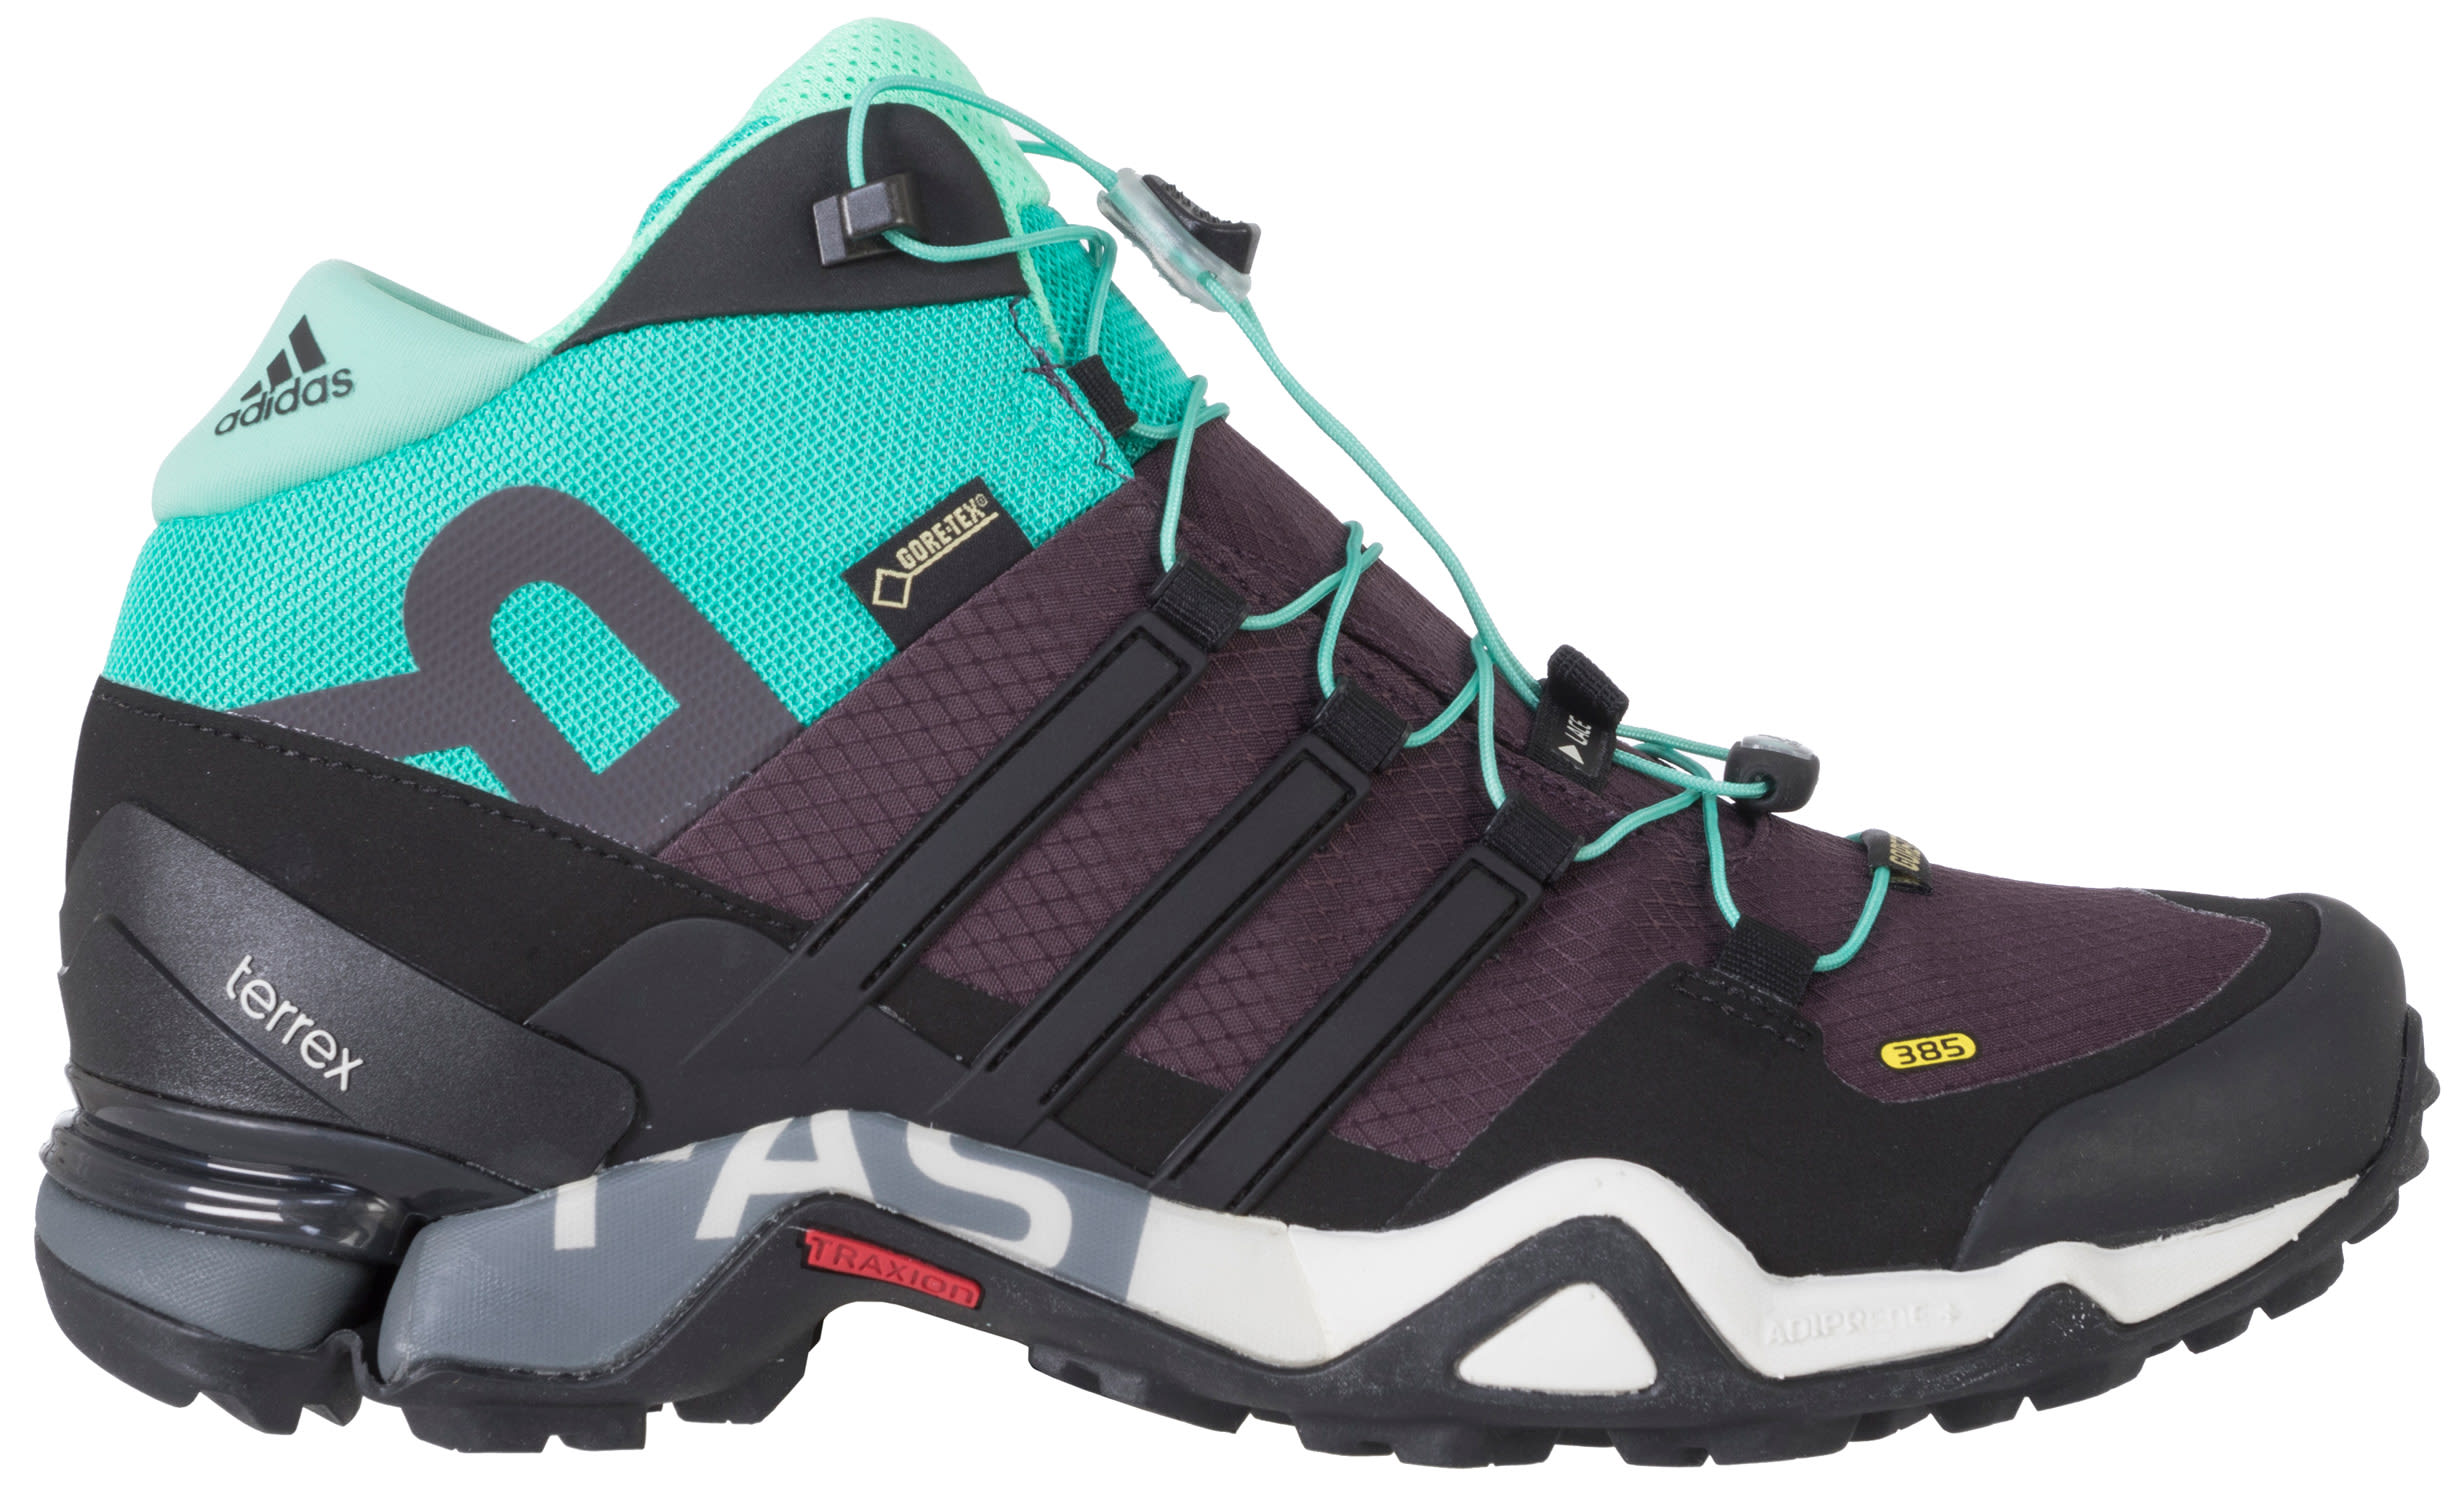 on sale adidas terrex fast r mid gtx hiking shoes womens. Black Bedroom Furniture Sets. Home Design Ideas